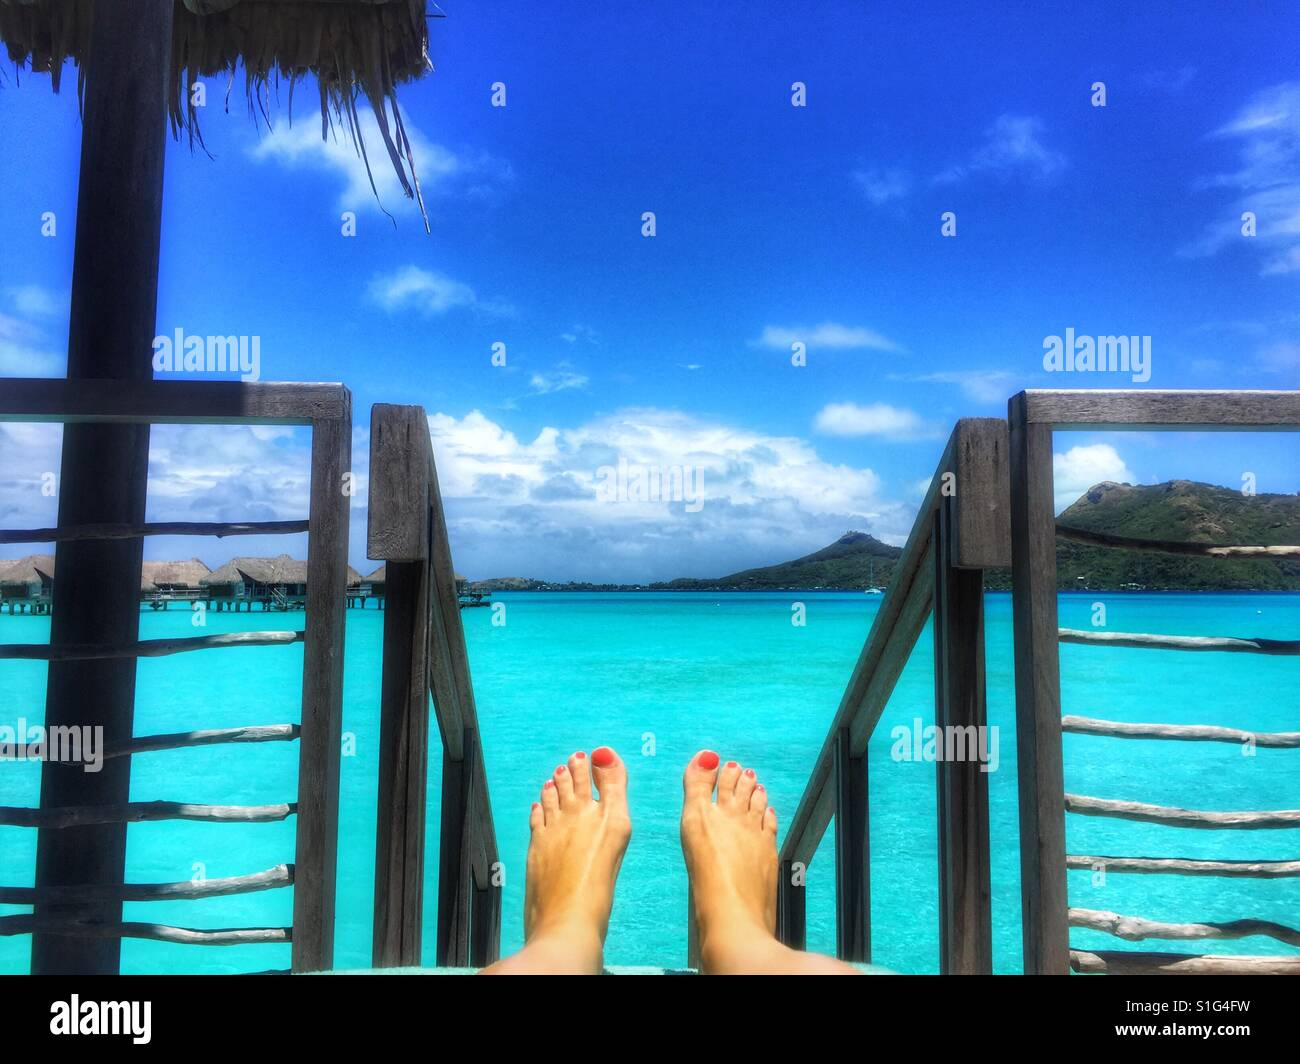 Feet with painted toenails on the deck of an overwater bungalow in Bora Bora, South Pacific - Stock Image